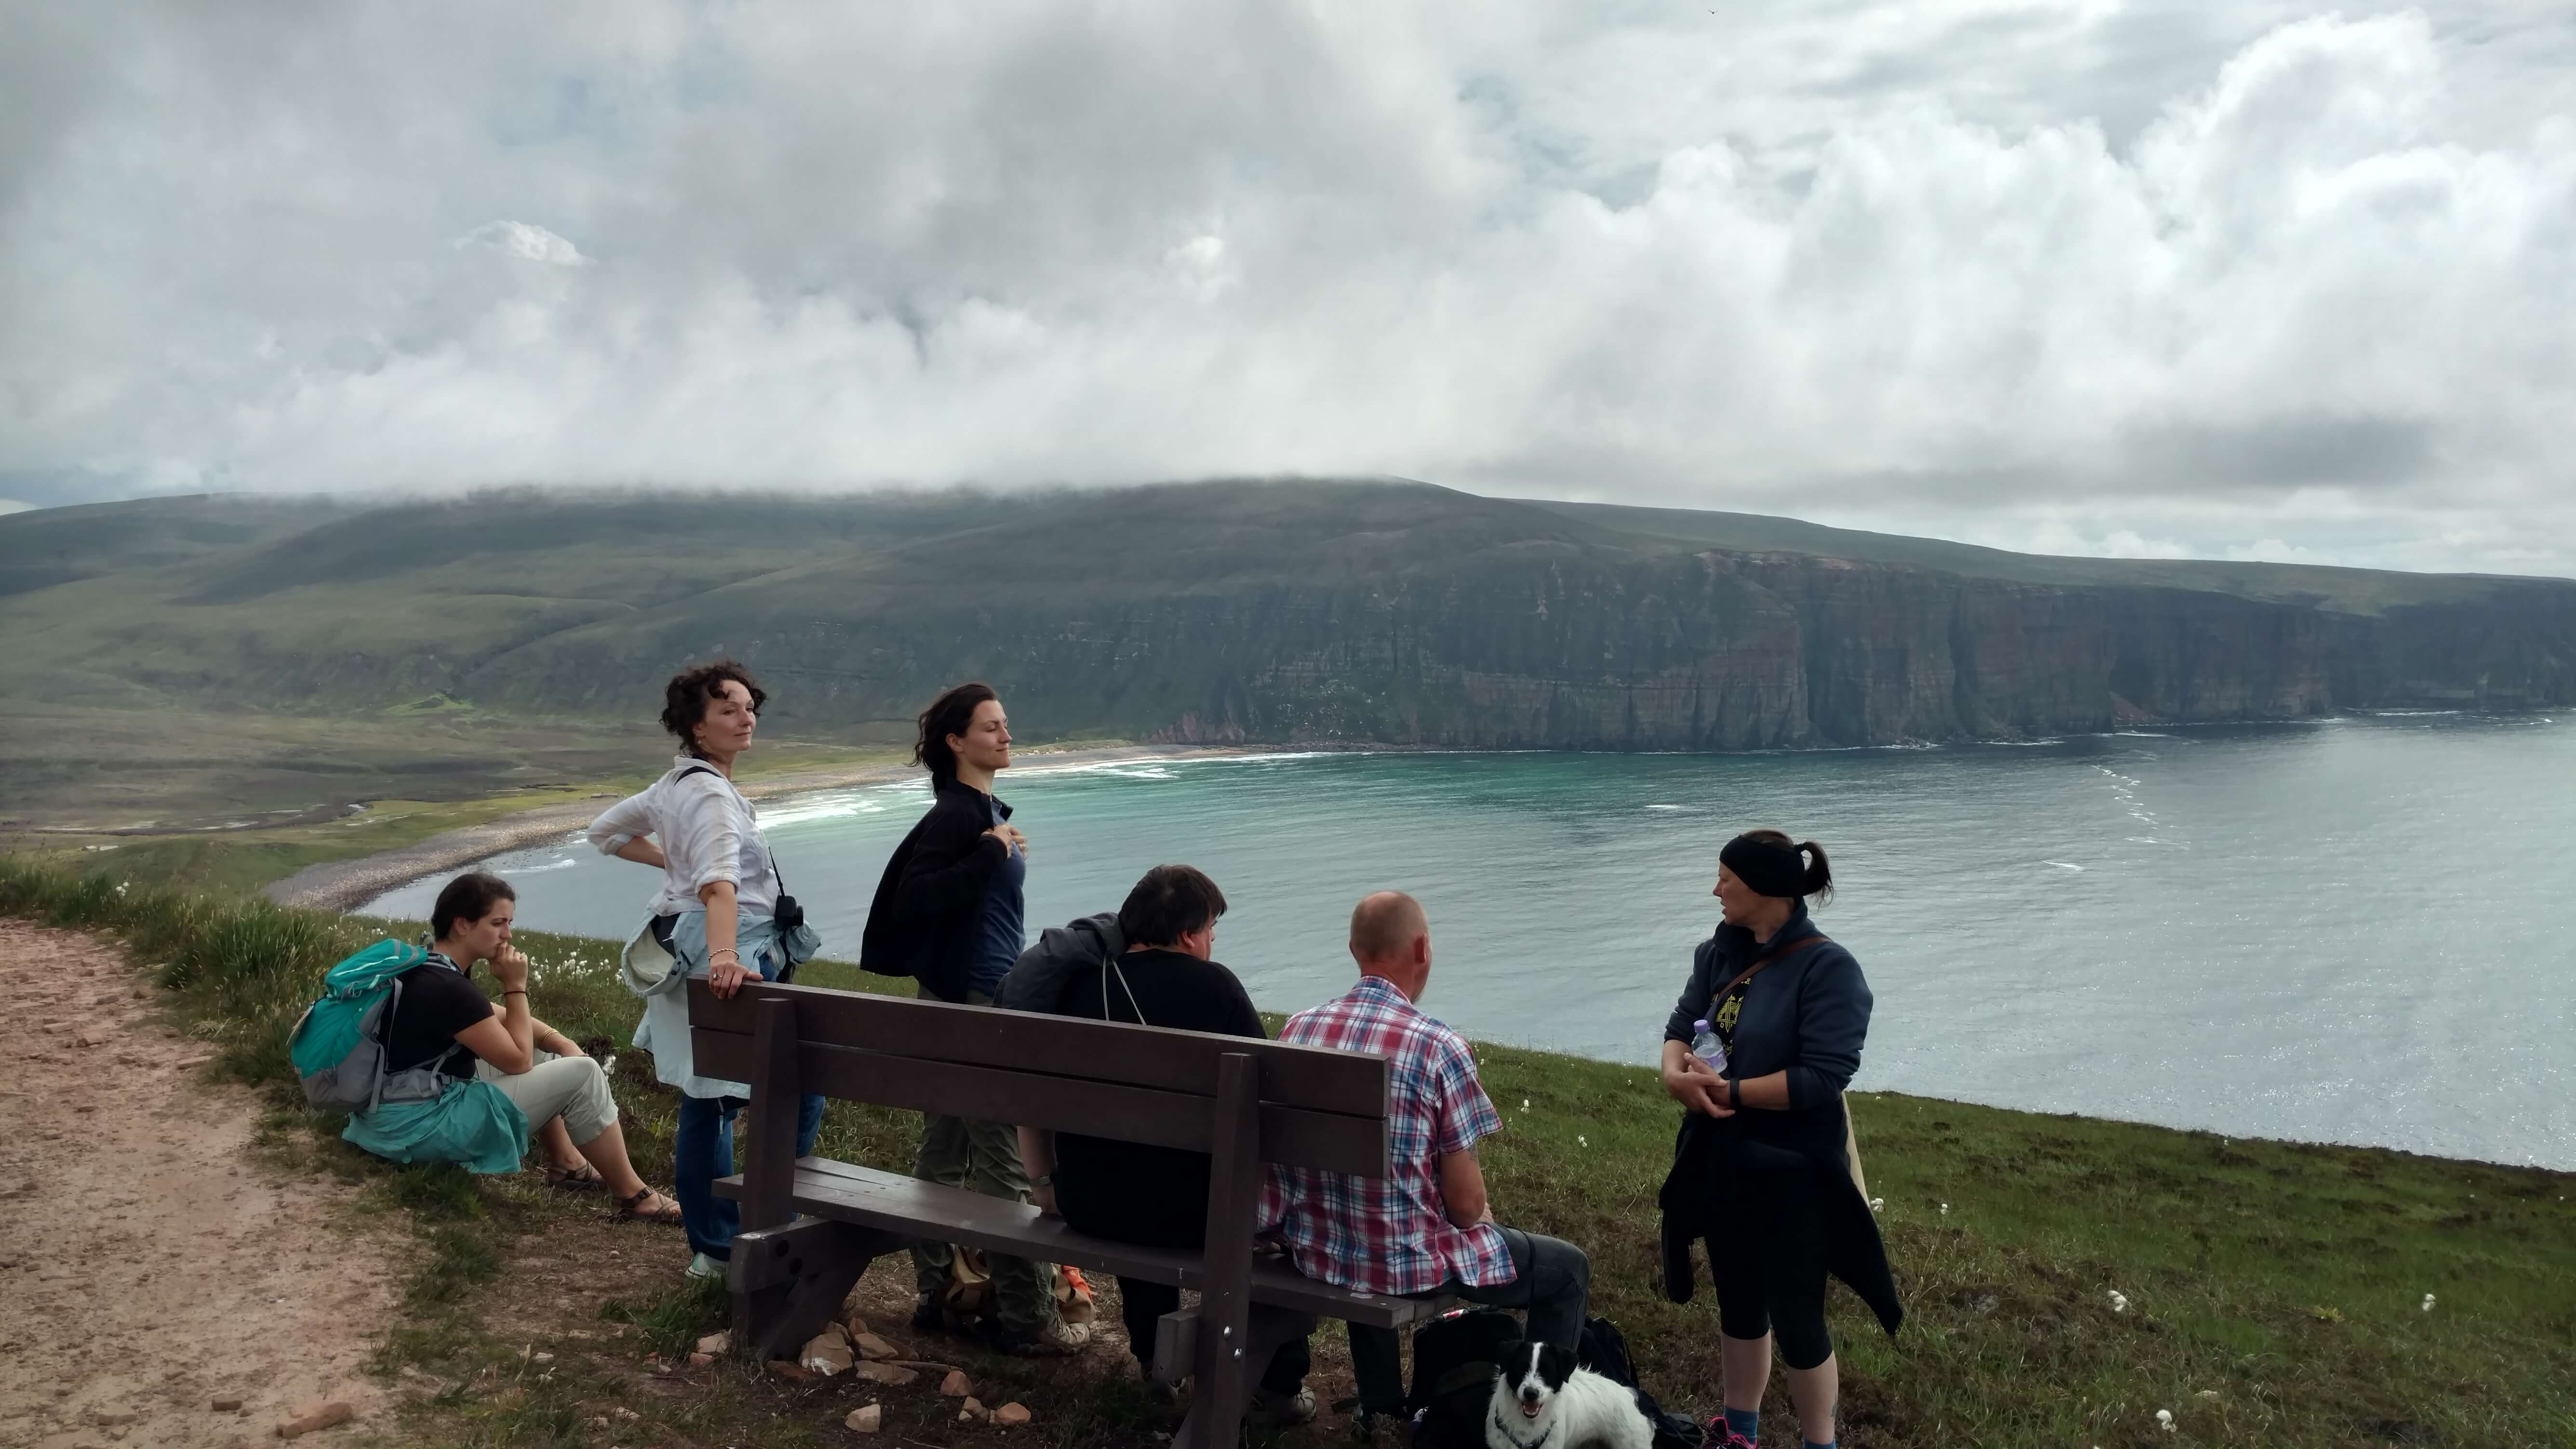 Hikers taking a break on a bench - the Old Man of Hoy walking trail.